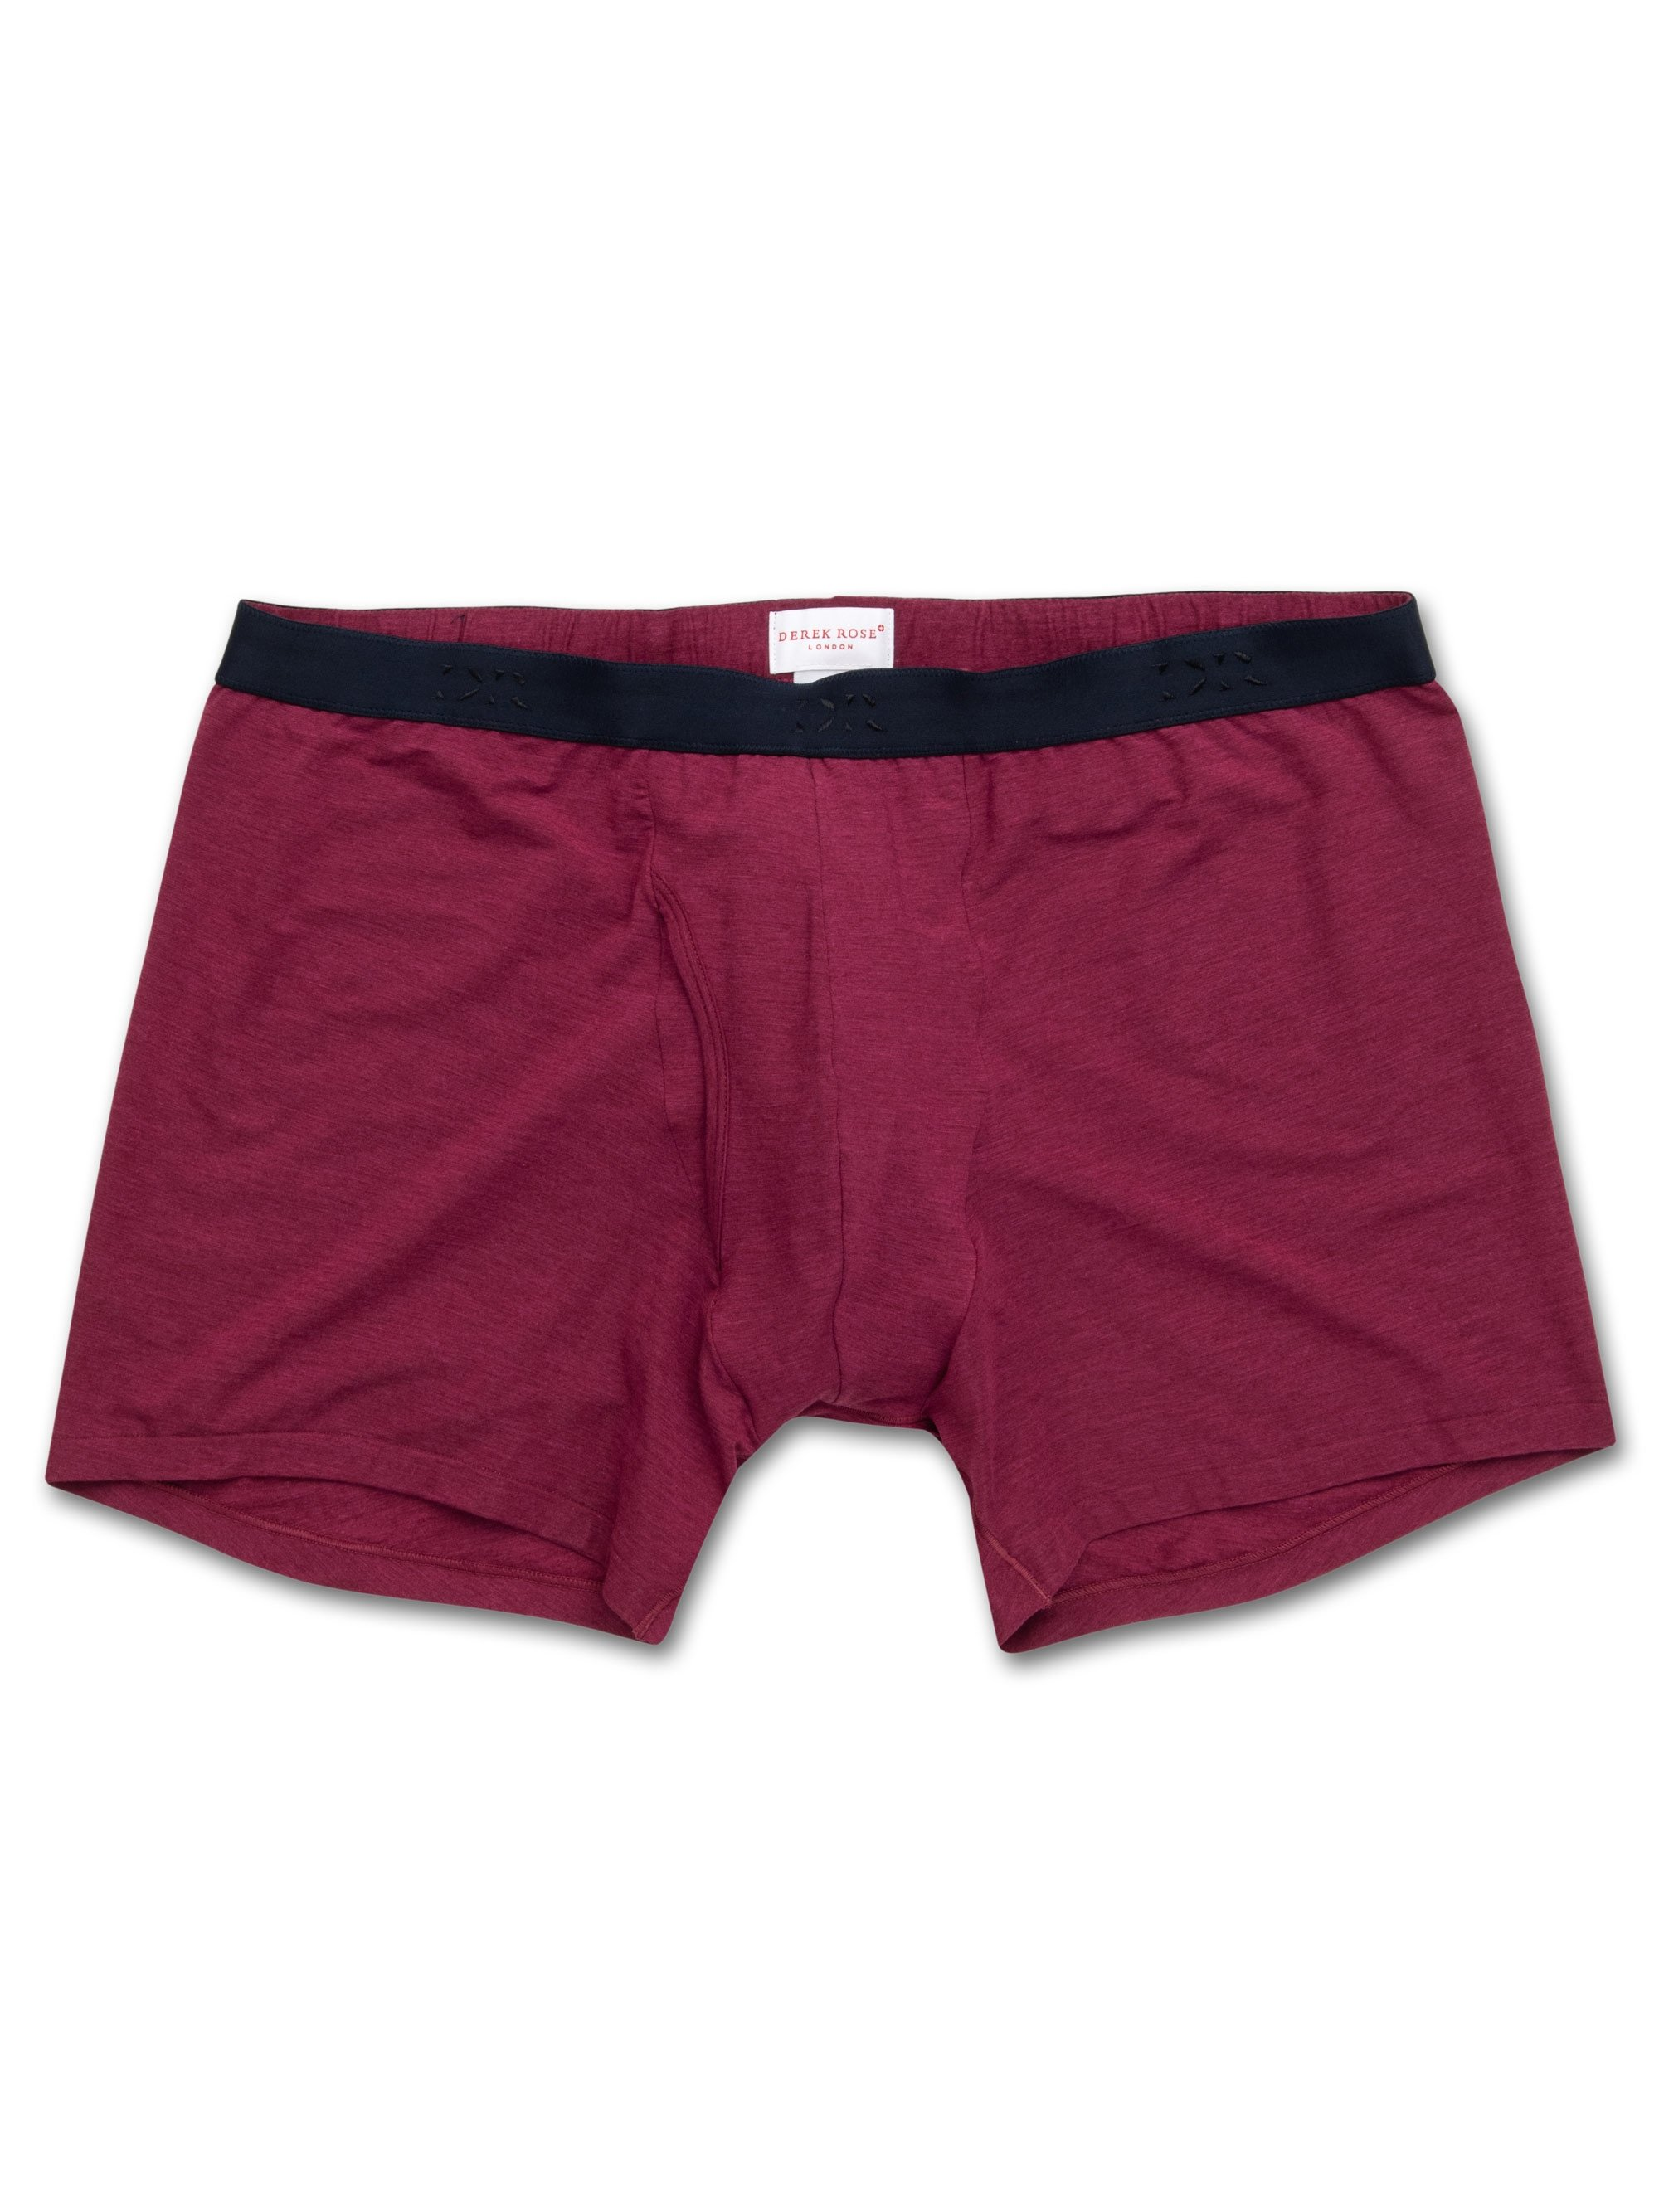 Men's Trunks Ethan Micro Modal Stretch Burgundy